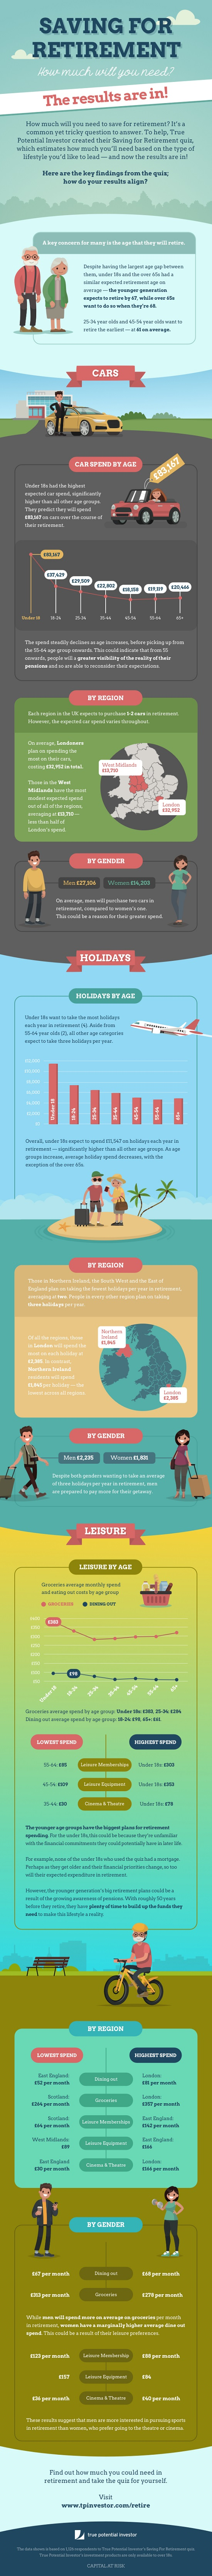 Retirement quiz infographic - from True Potential